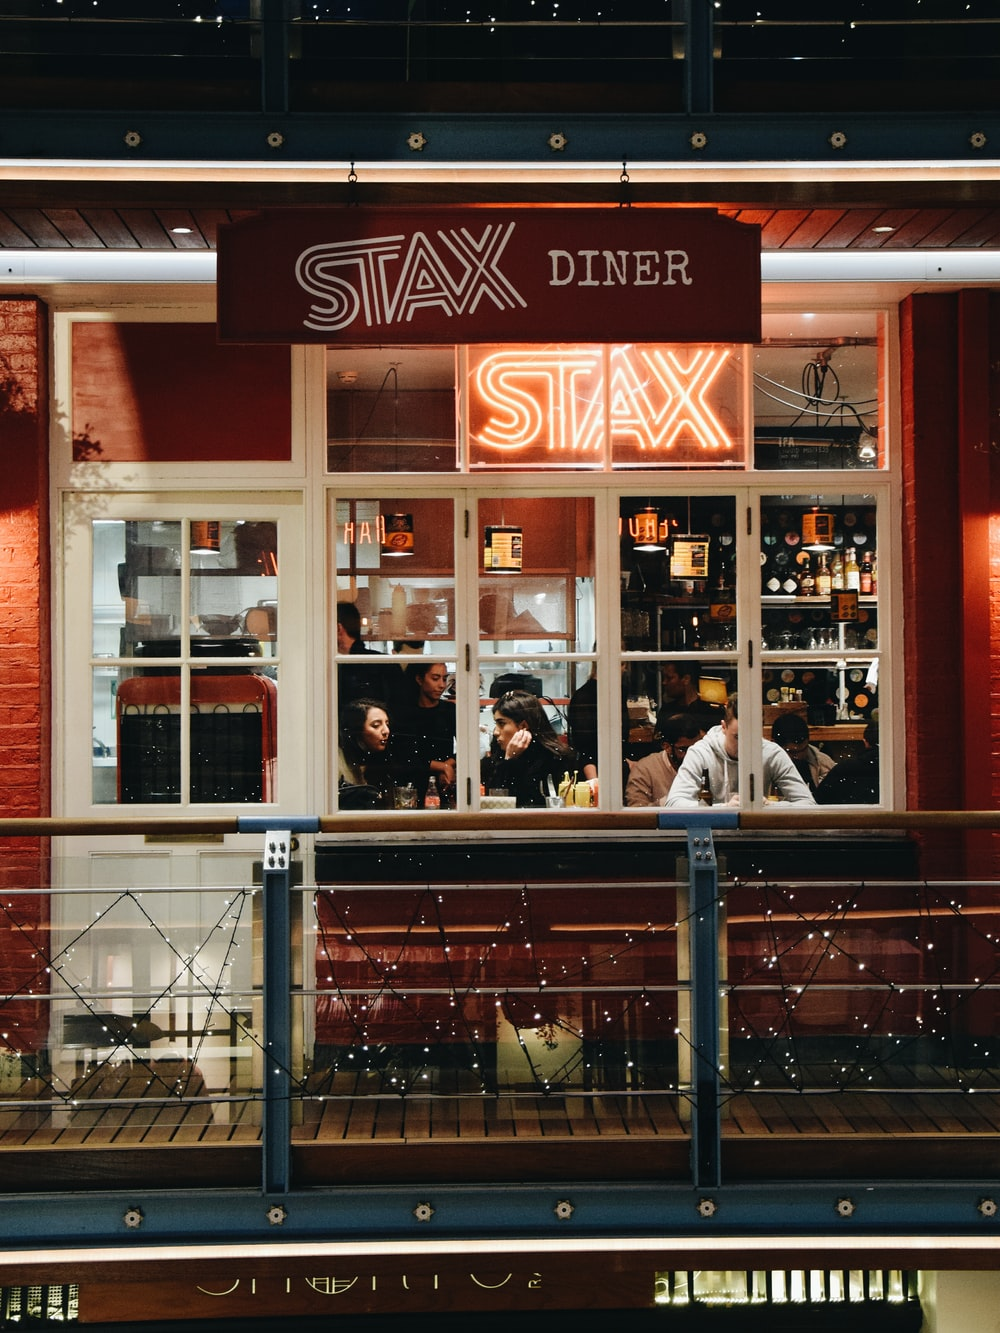 Stax Diner building on focus photography